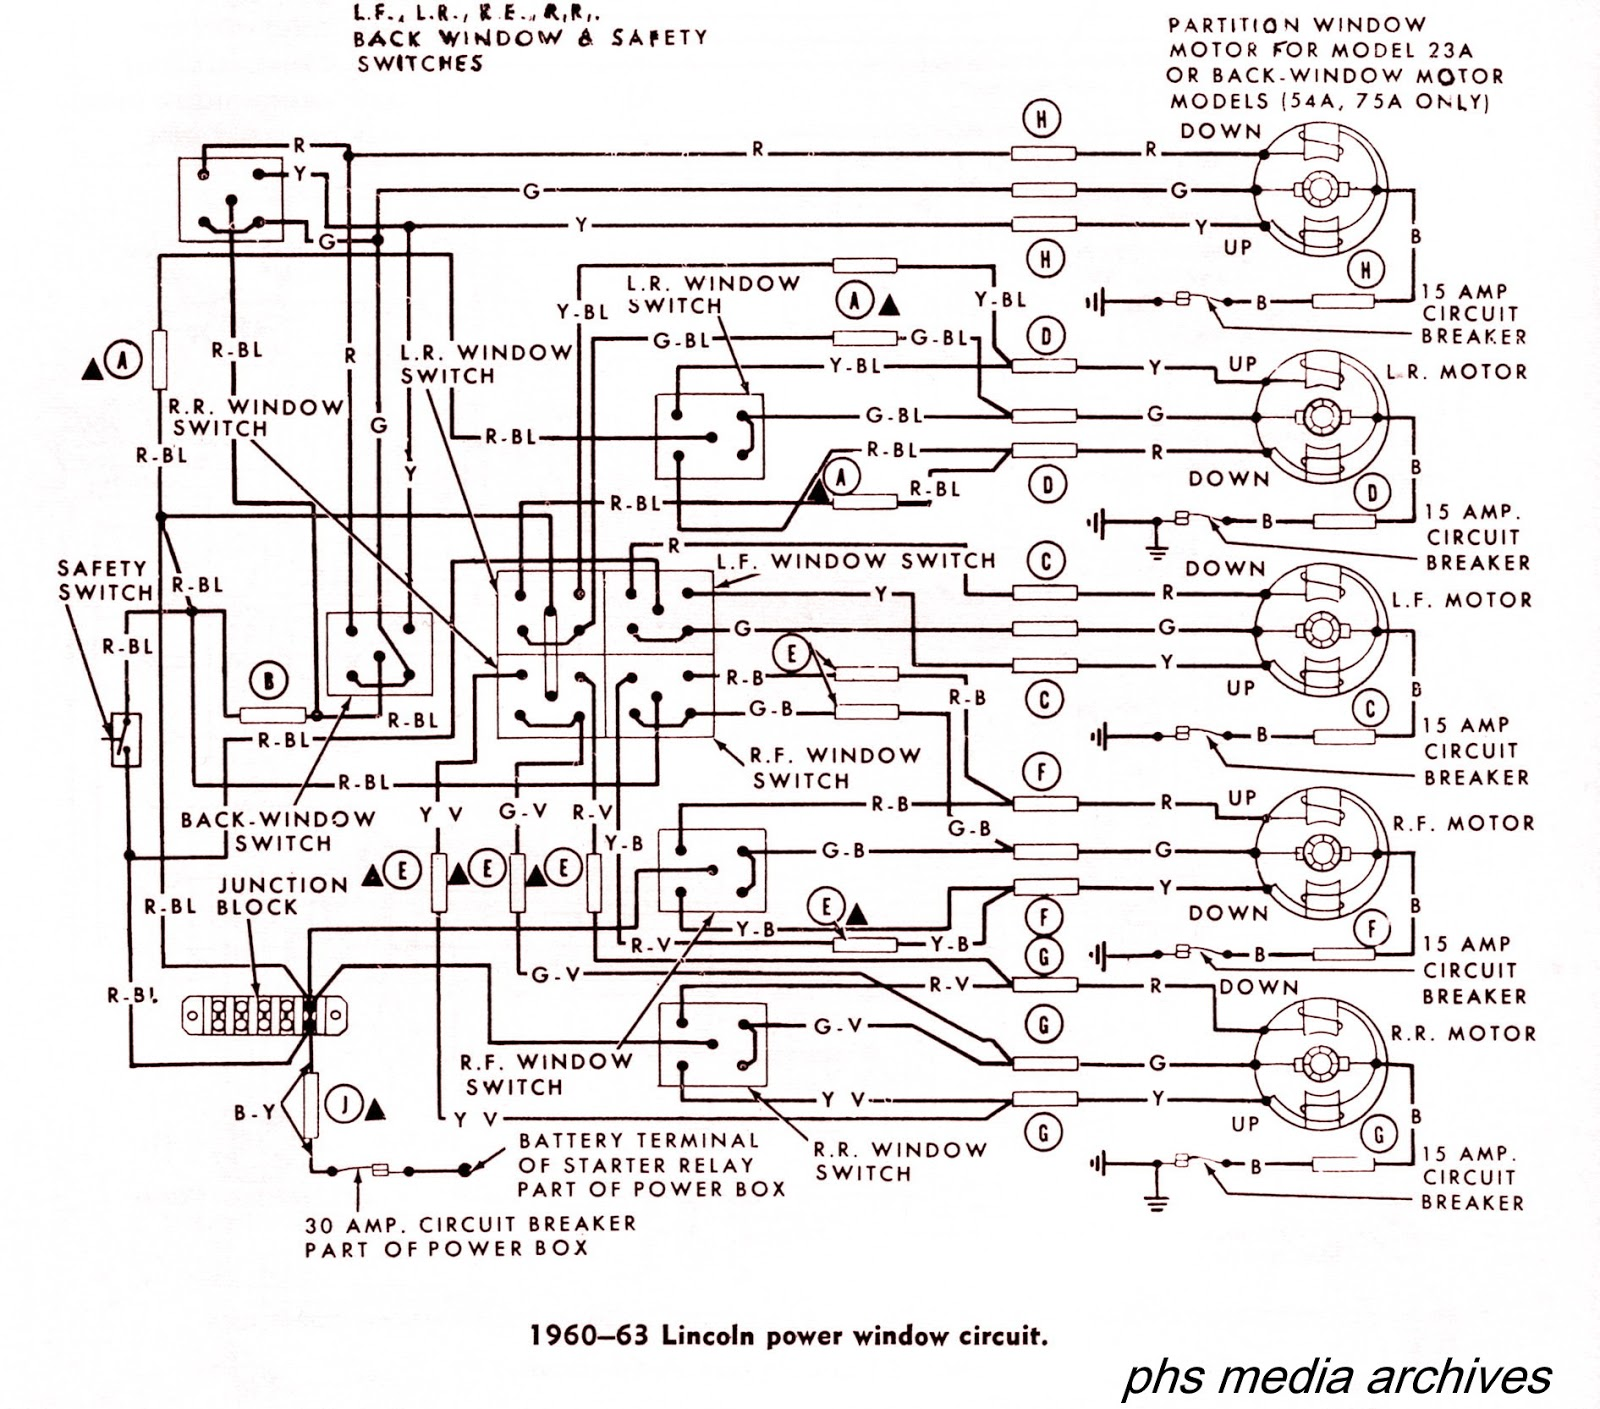 Lincoln Welder Engine Wiring Diagram Library Arc Tech Series 1960 1964 Diagrams Phscollectorcarworld Continental